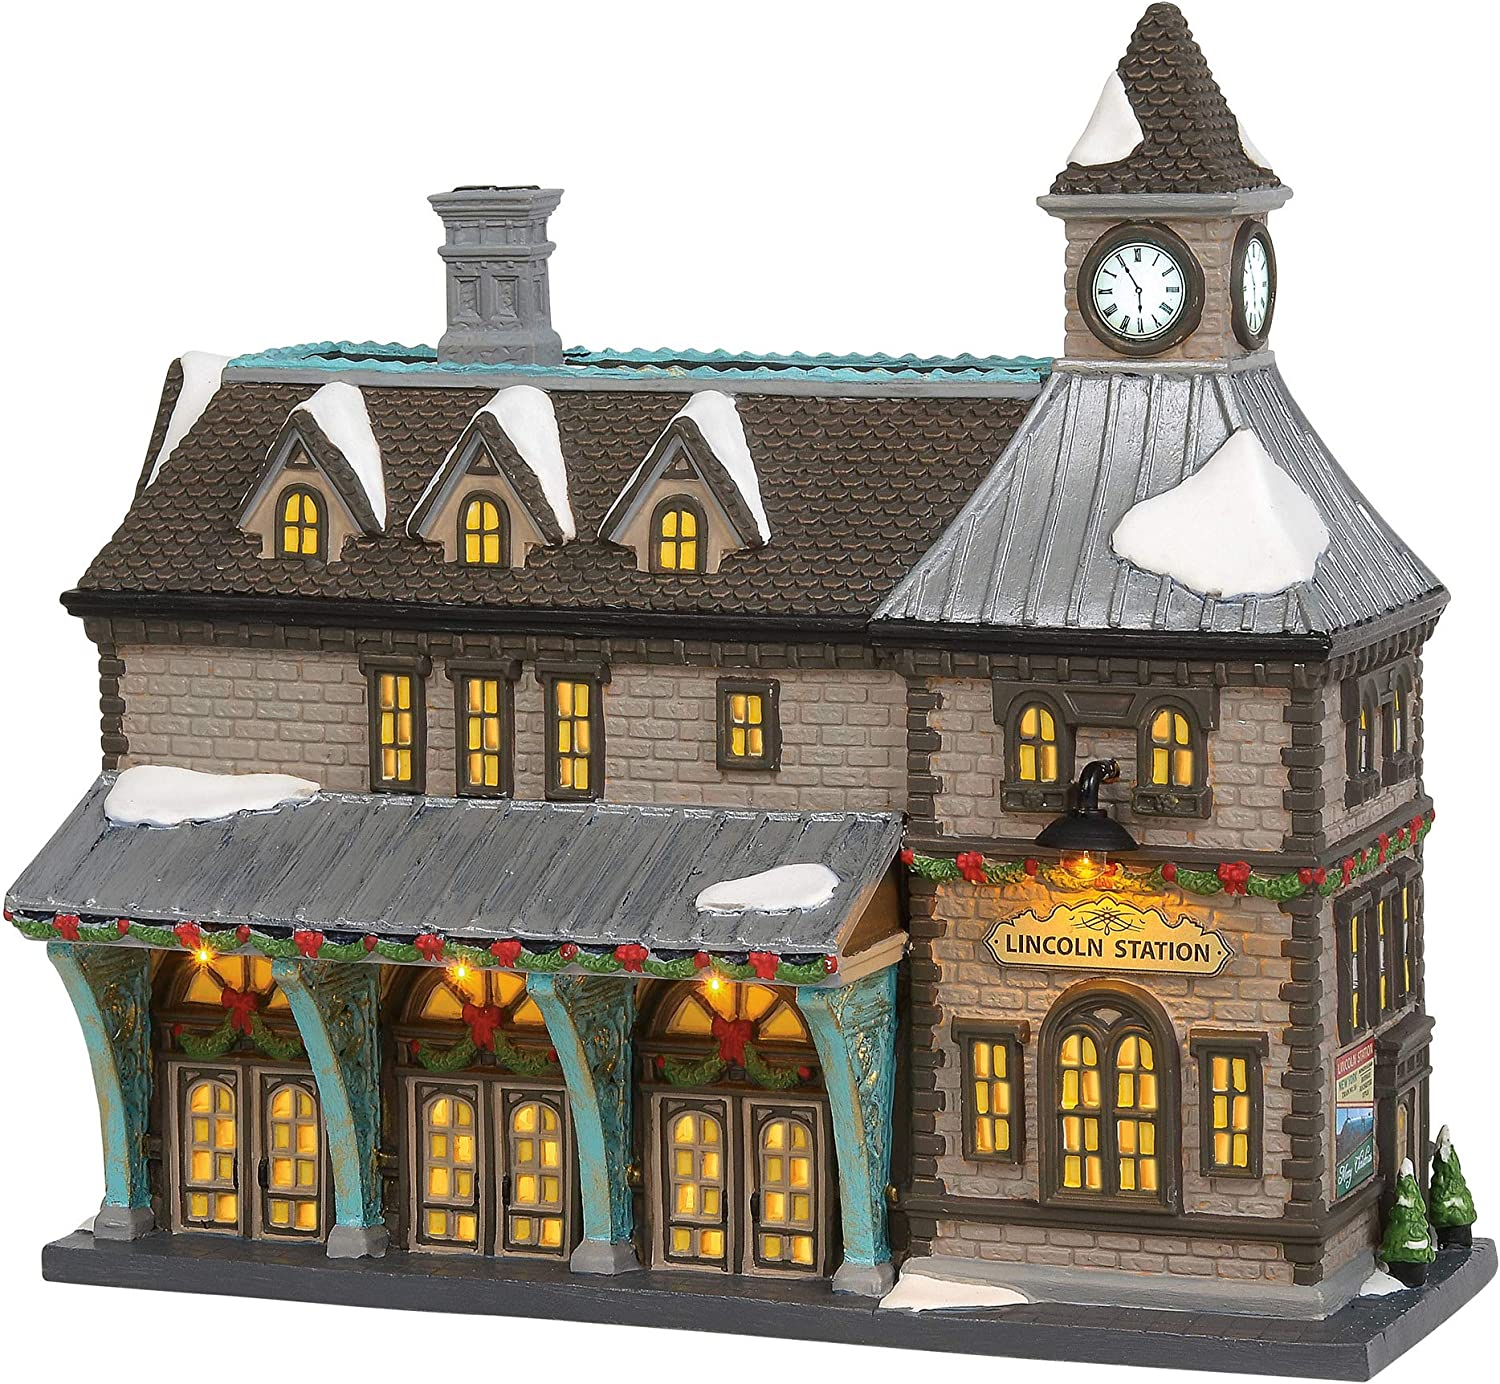 Department 56 Christmas in The City Village Lincoln Station Lit Building with Sound, 9.45 Inch, Multicolor